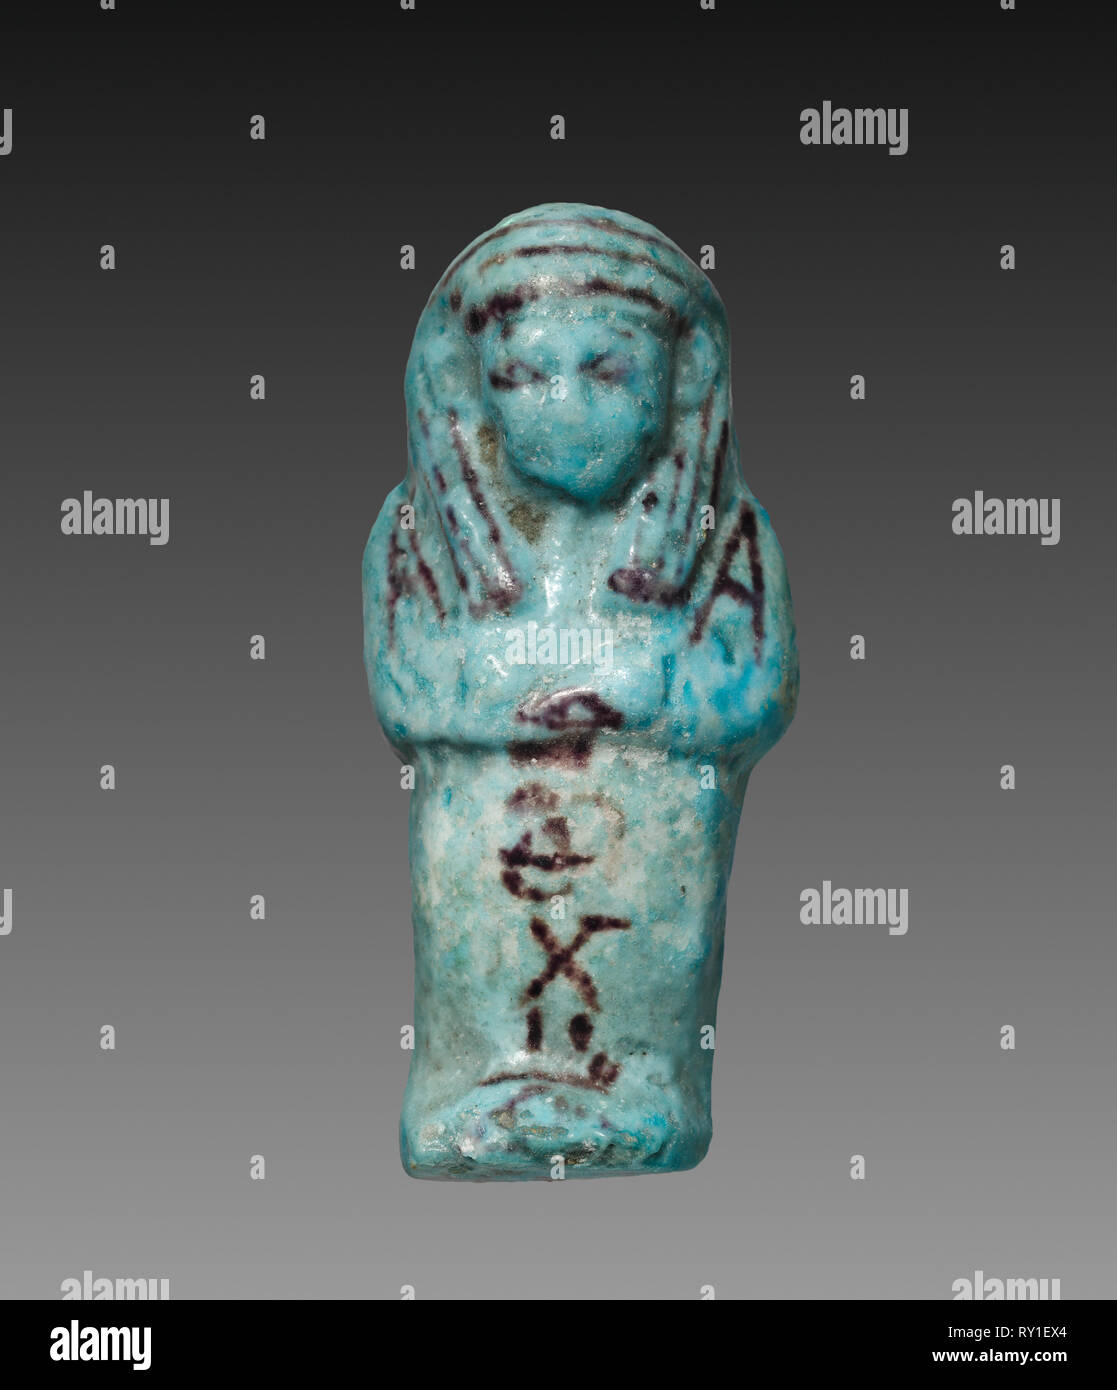 Shawabty of Payefadjer, 1000-945 BC. Egypt, Third Intermediate Period, late Dynasty 21 (1096-945 BC). Turquoise faience with purple decoration; overall: 9.2 x 4.1 x 2.4 cm (3 5/8 x 1 5/8 x 15/16 in - Stock Image